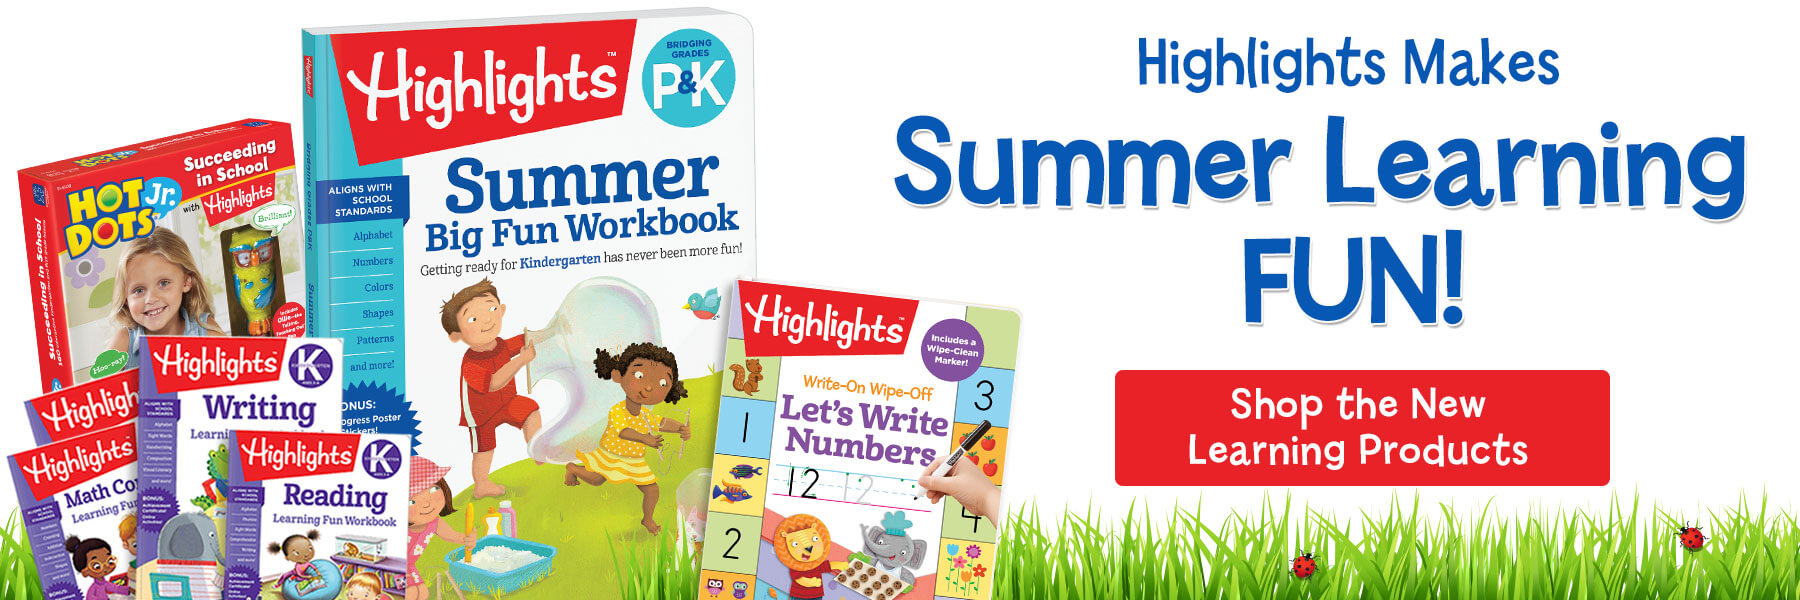 Make summer learning fun with new Highlights Learning products